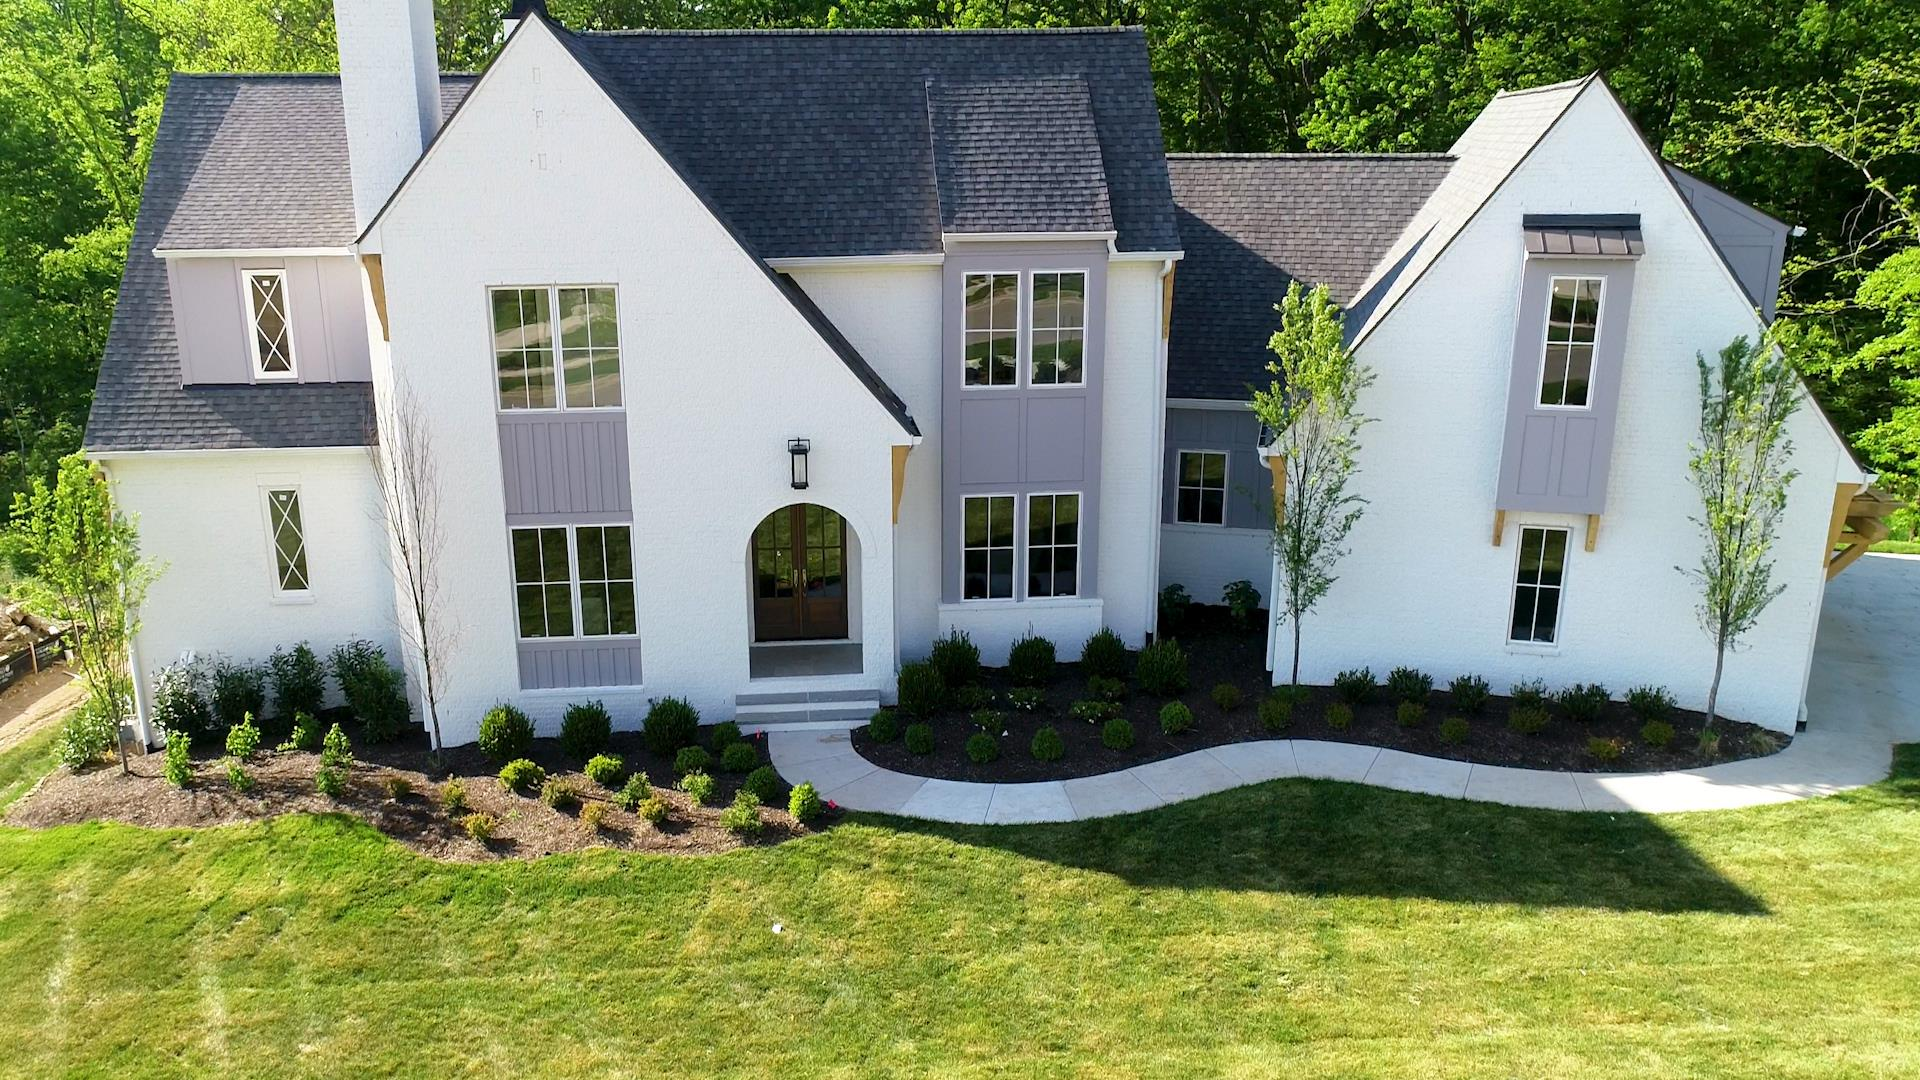 6456 Penrose Dr, Brentwood, TN 37027 - Brentwood, TN real estate listing